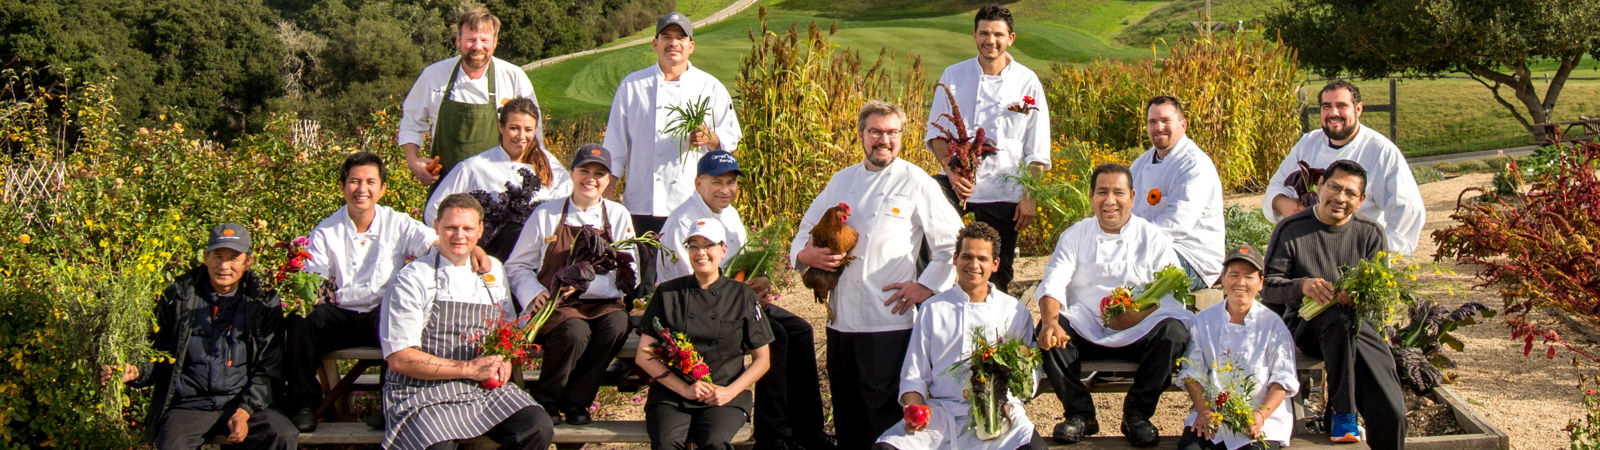 Carmel Valley Ranch_Dining_all chefs in the organic garden